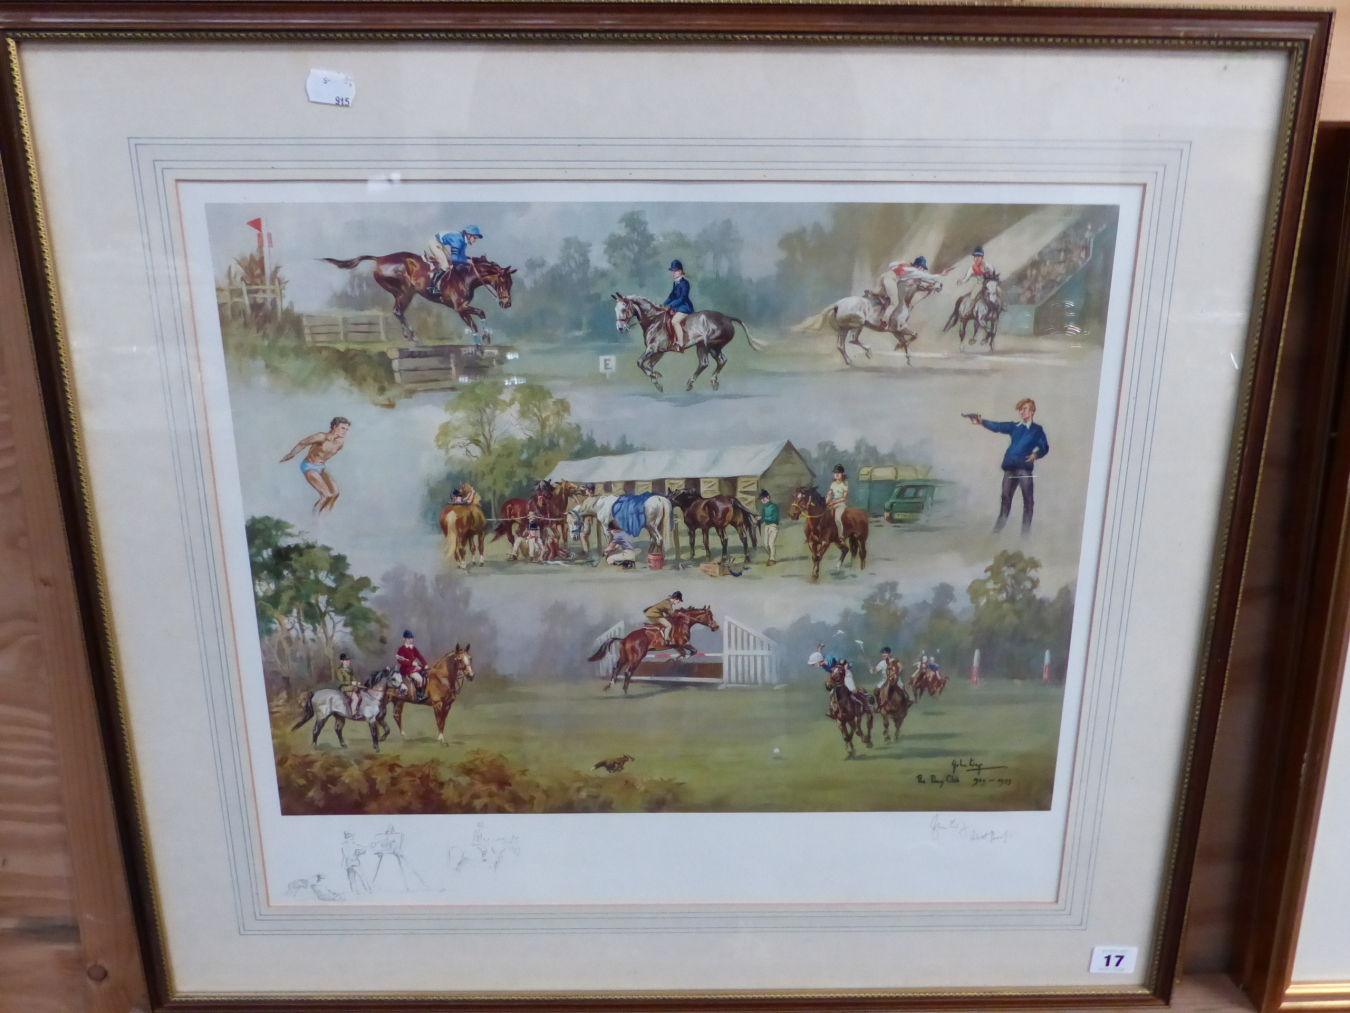 AFTER JOHN KING, THE PONY CLUB. SIGNED ARTISTS PROOF COLOUR PRINT. 48 x 53.5cms - Image 4 of 5